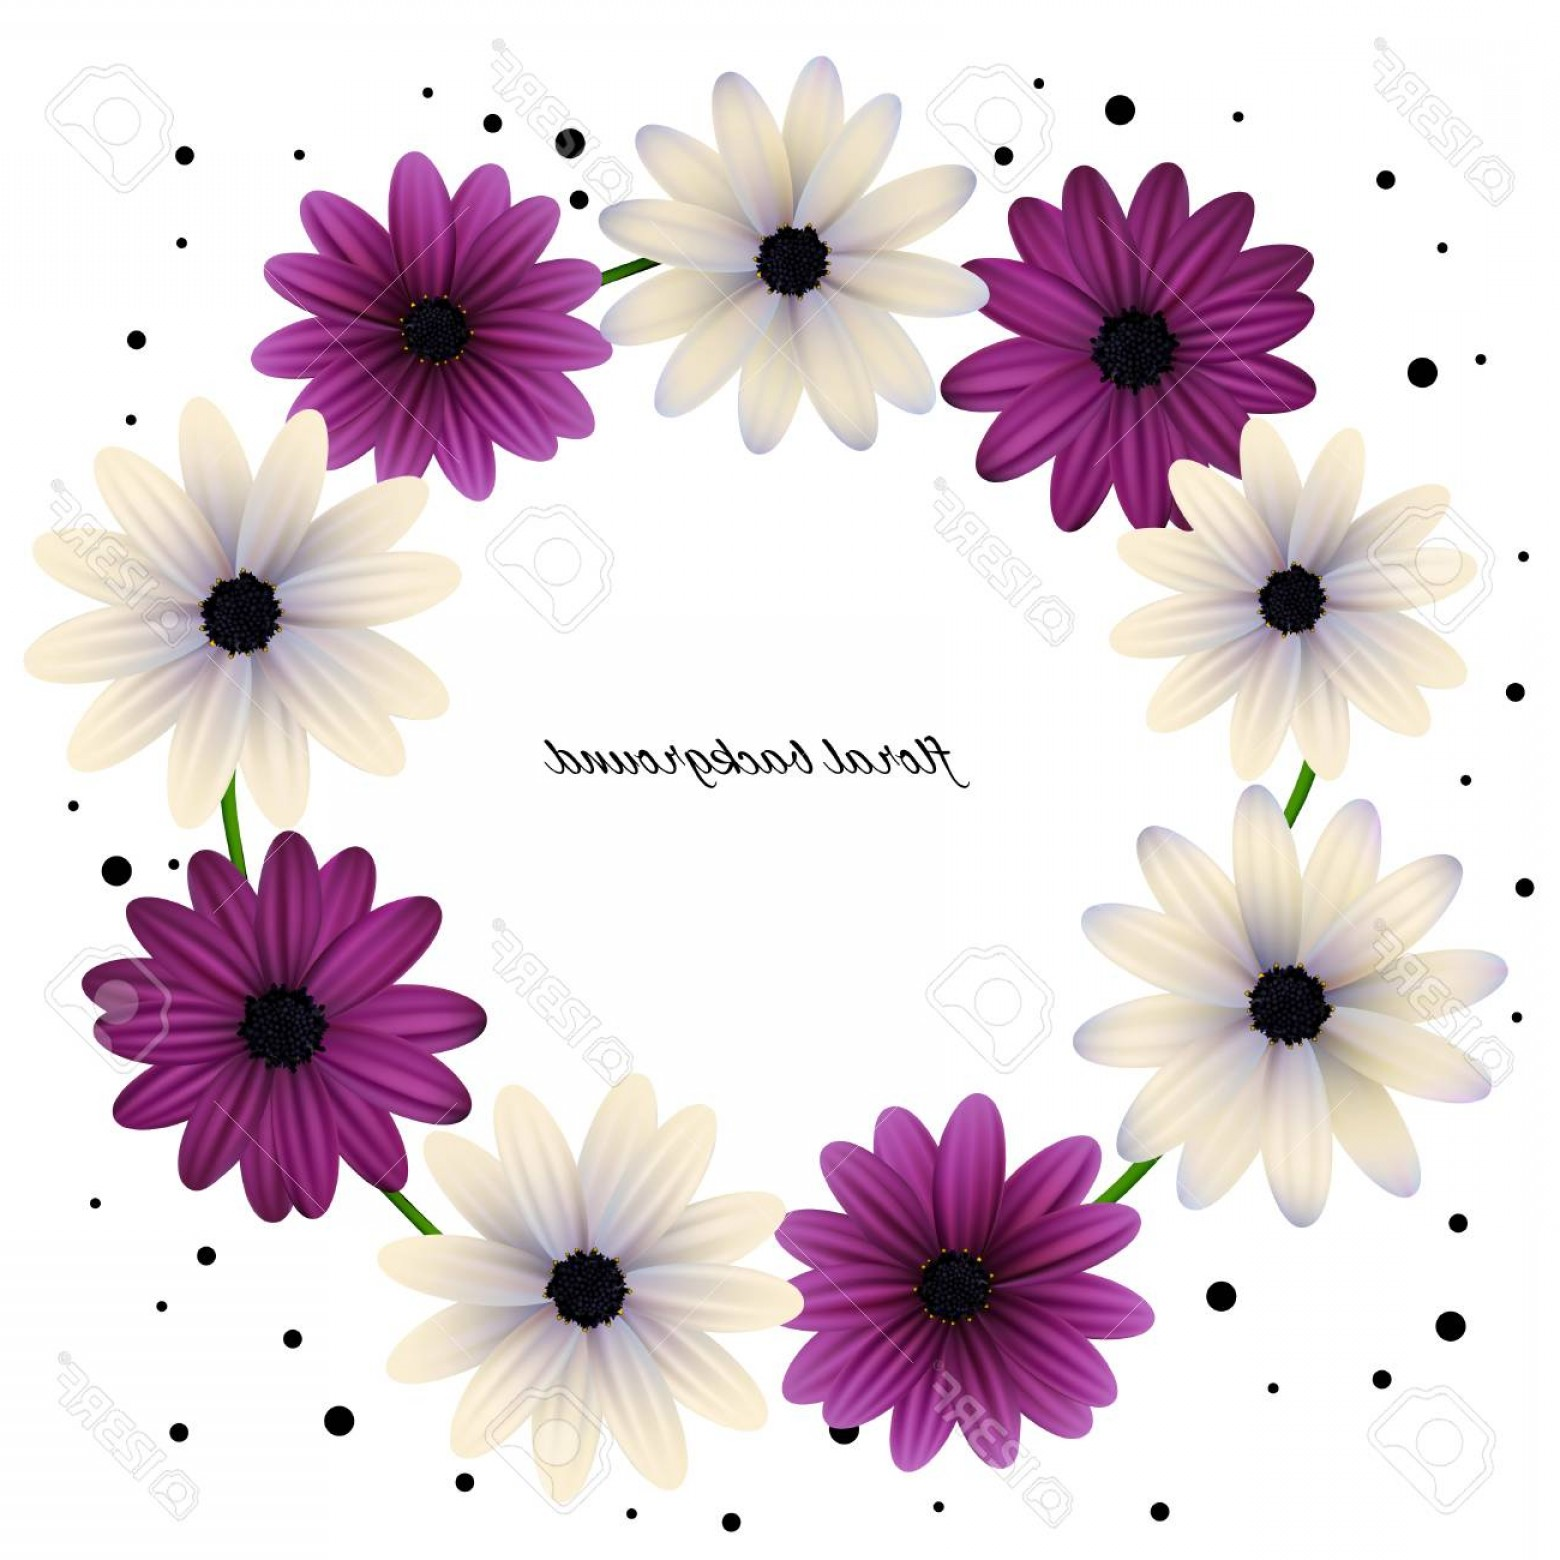 Purple Gerber Daisy Vector Framw: Photostock Vector Floral Wreath Background Can Be Use For Frames And Cards Gerberas Daisies Plants Flora Vector Illust